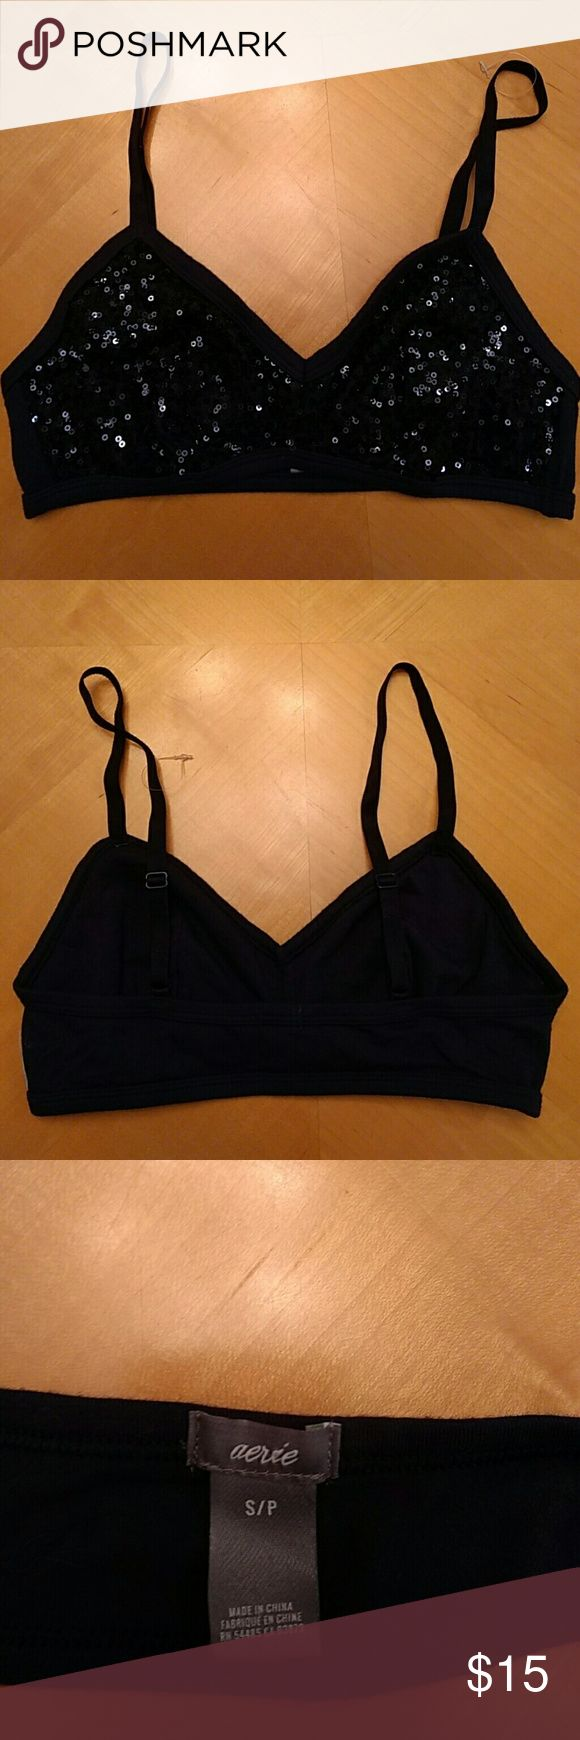 Aerie Sequin Bralette Navy blue sequin bralette (matching velour shorts available in size XS) NWOT never worn aerie Intimates & Sleepwear Bras